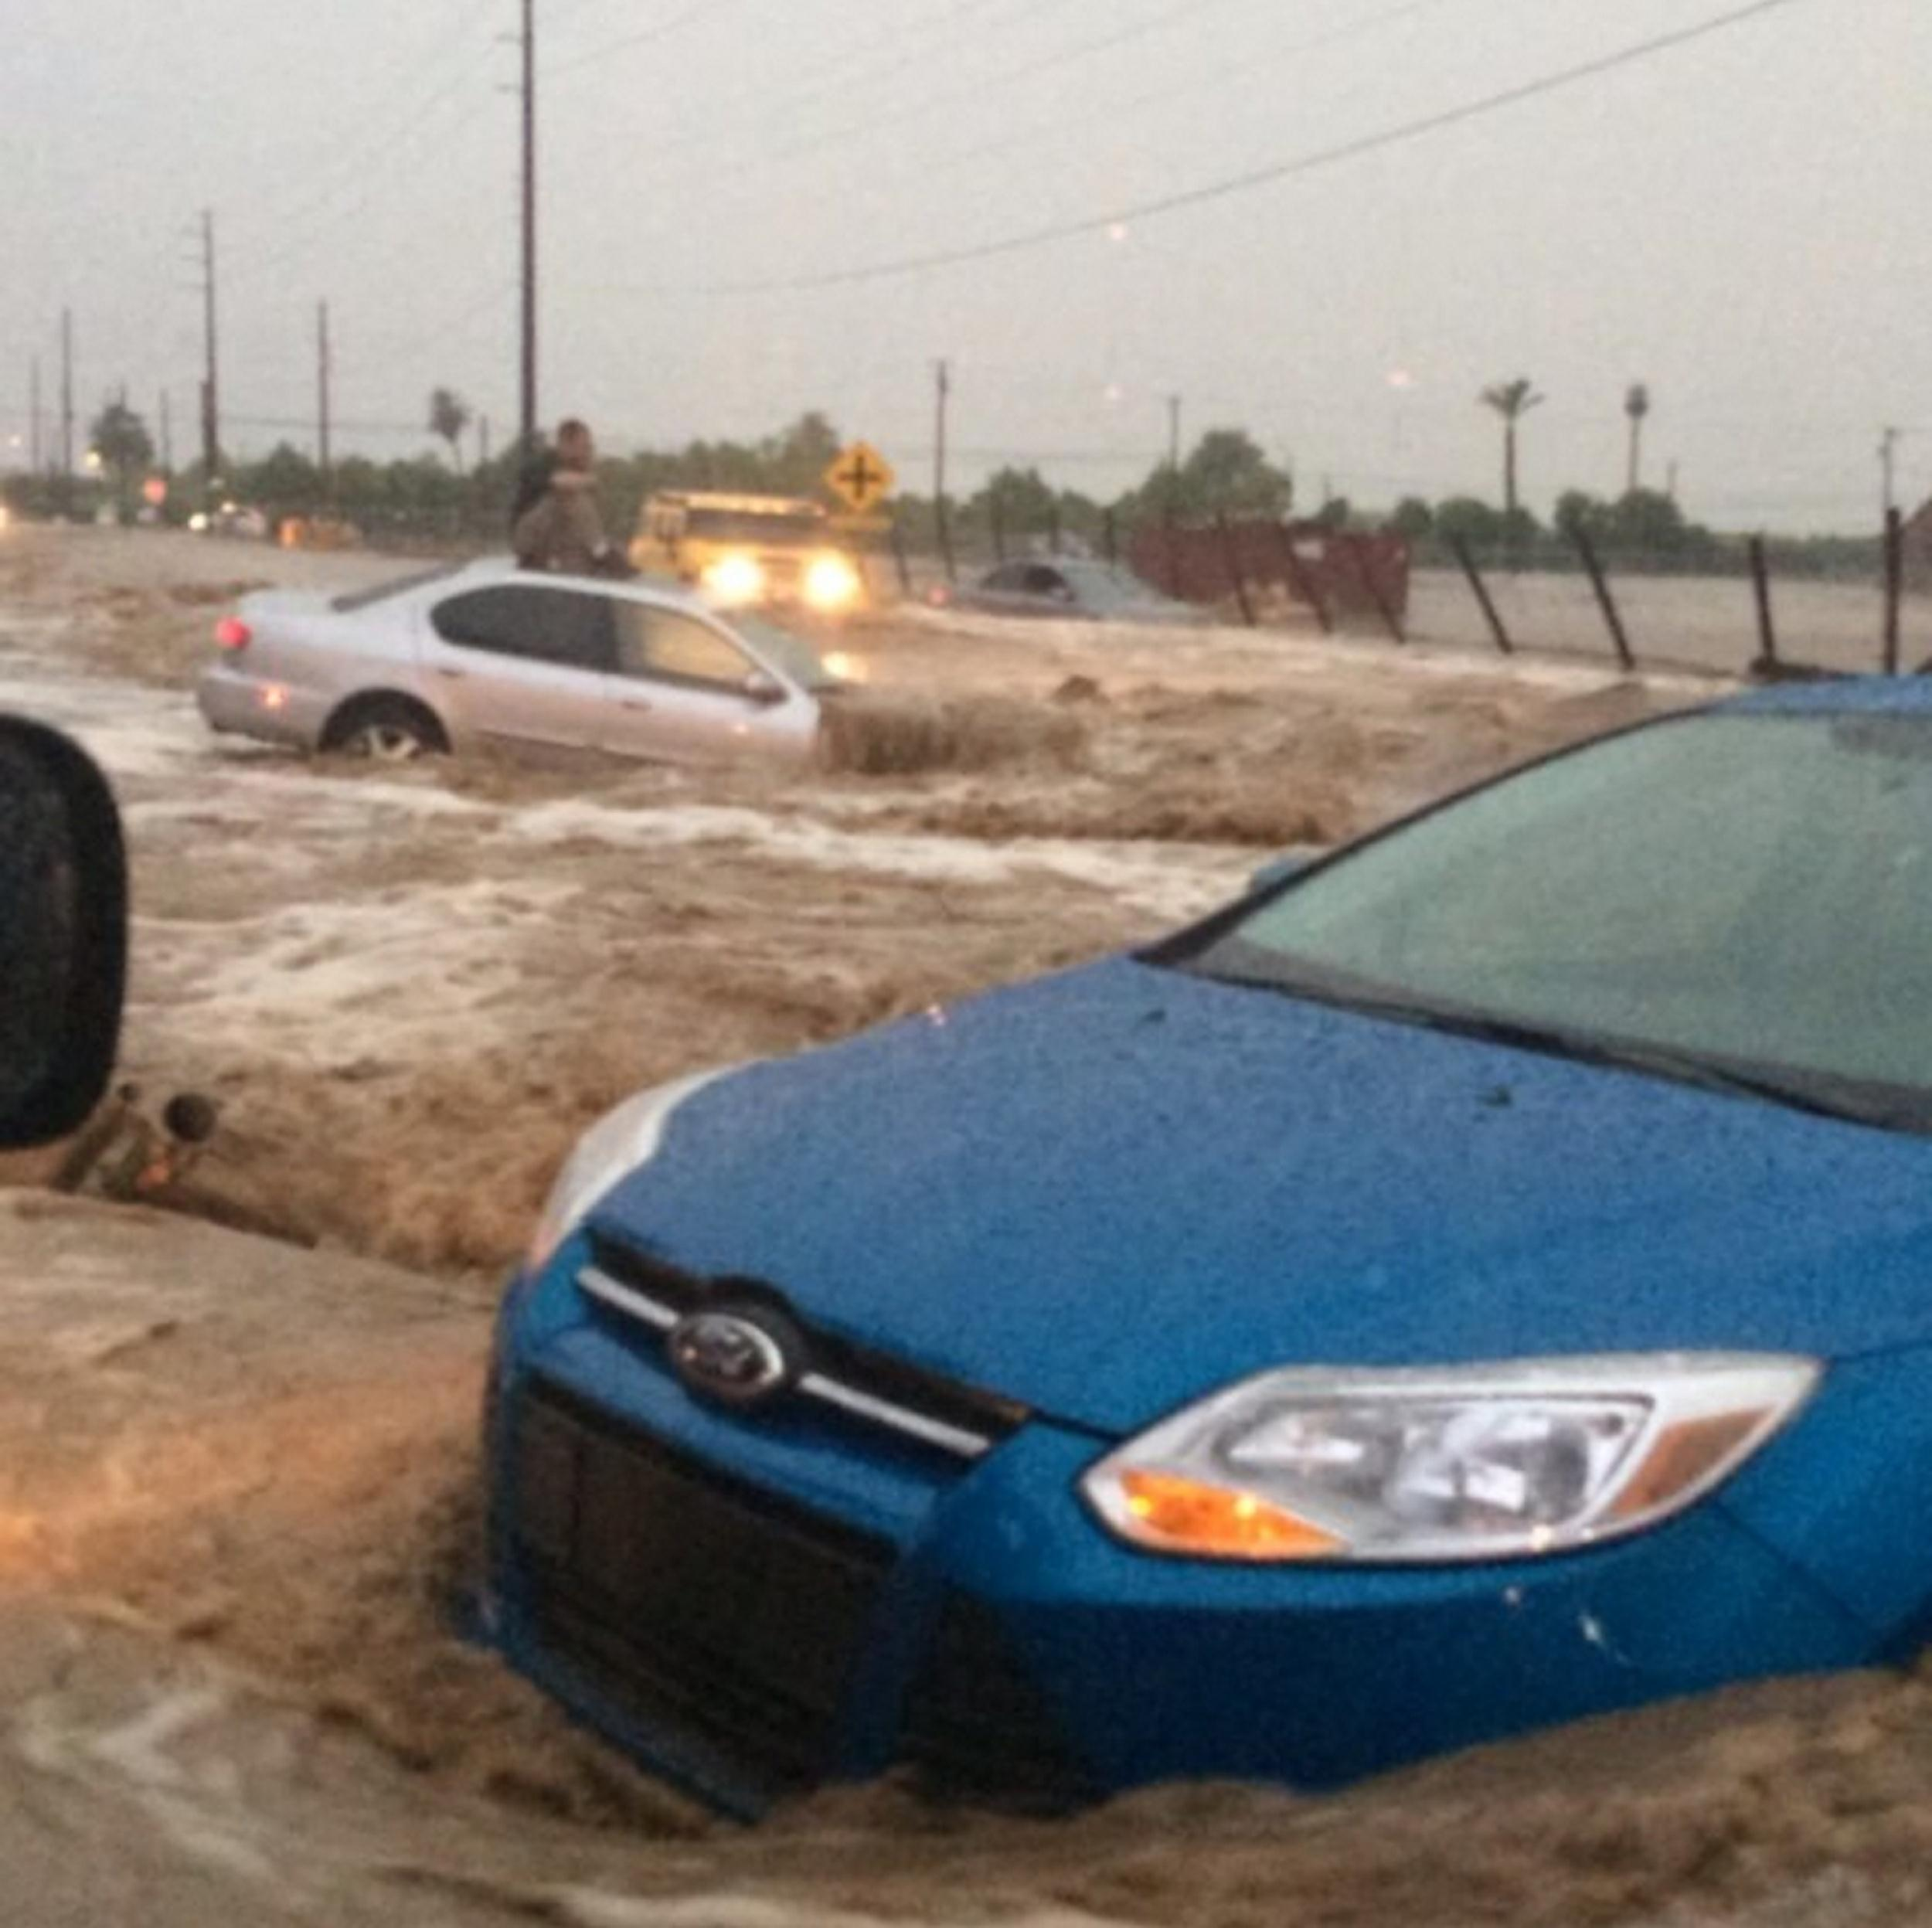 Flash-flooding in Arizona after heavy rainfall turning roads into moving rivers, stranding motorists and flooding several streets.